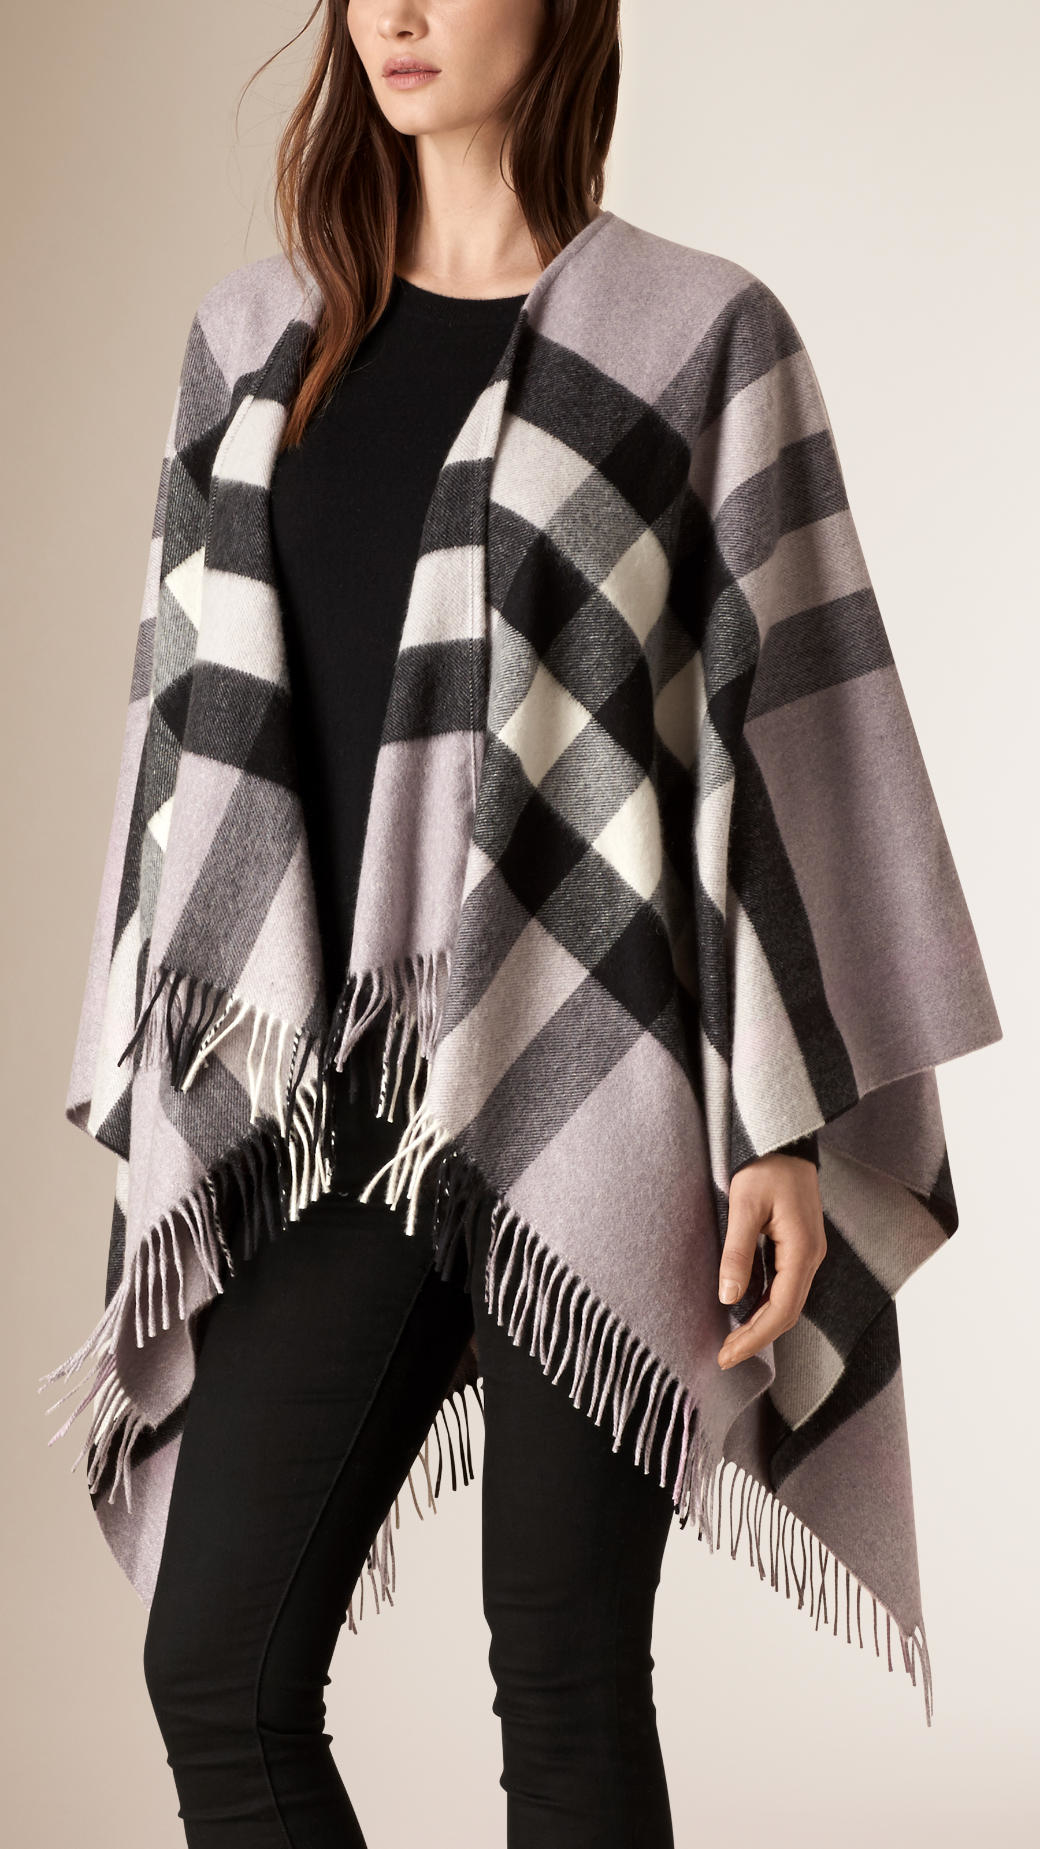 Burberry Check Cashmere and Wool Poncho Shopping Online Cheap Outlet Shop Offer Cheap Online Cheap 2018 Newest Cheap Genuine 0ouPpbH